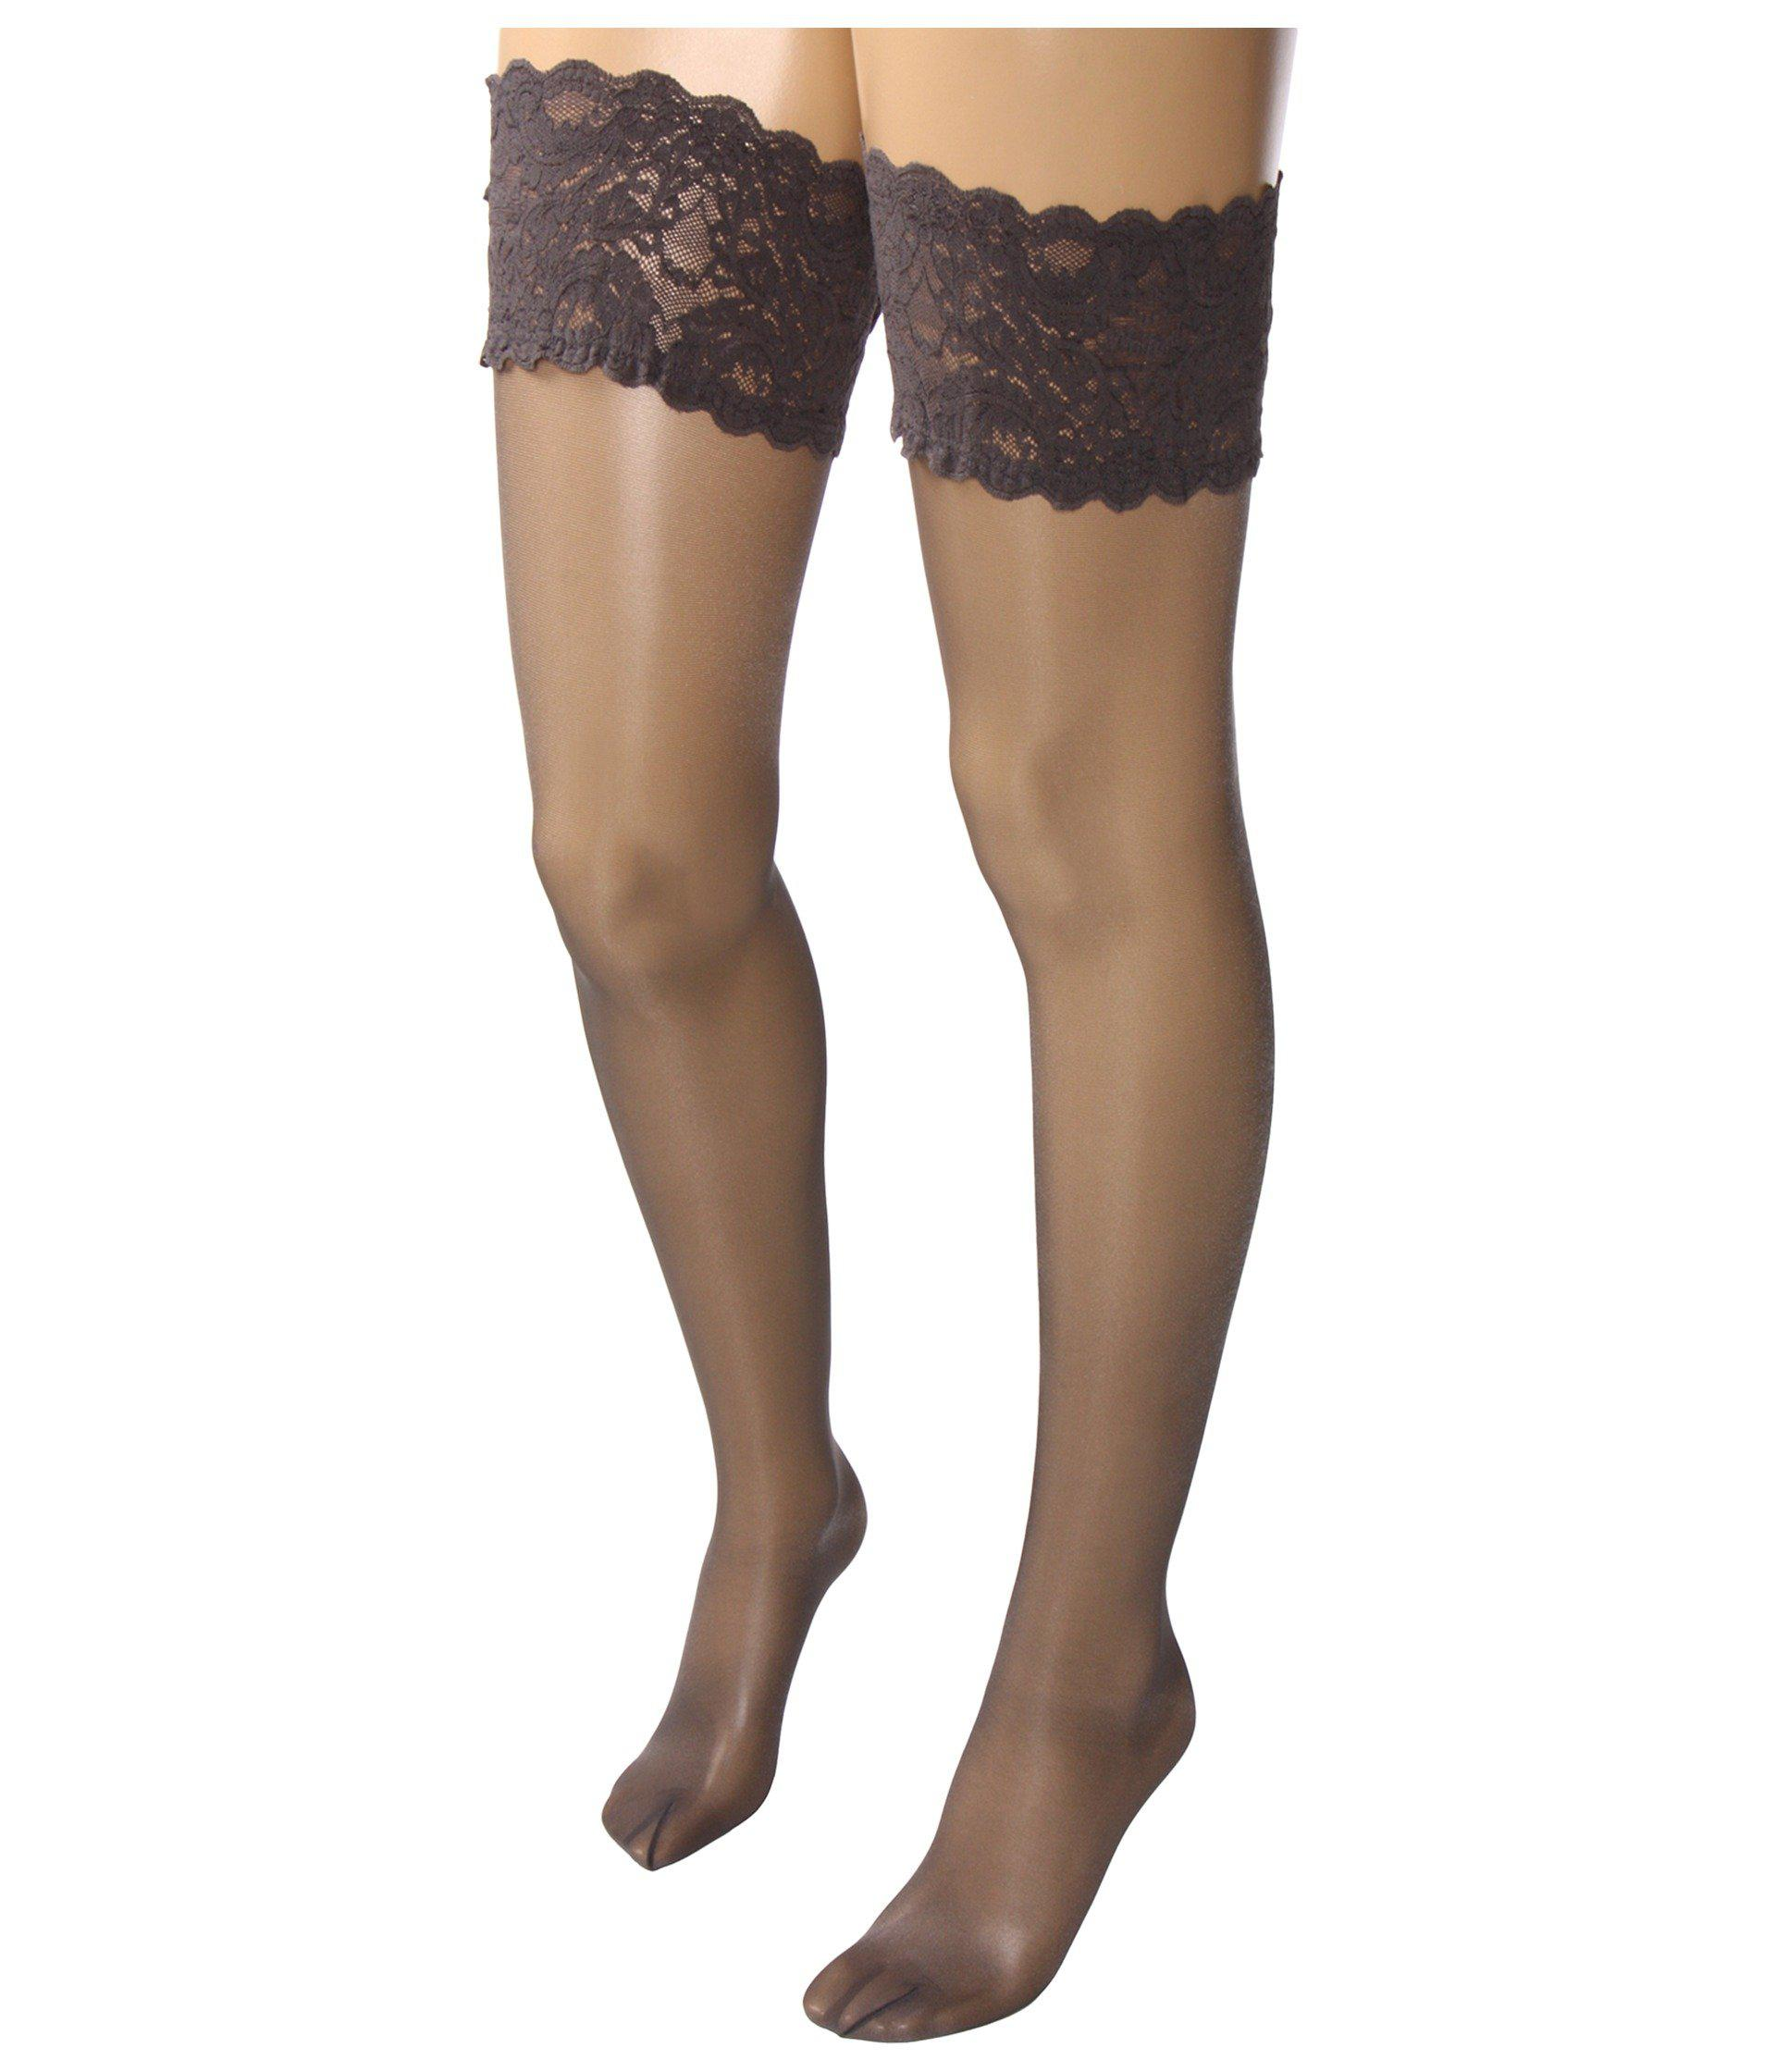 f1b7b0309 Wolford Satin Touch 20 Stay-up Thigh Highs (cosmetic) Women s Thigh High  Socks Shoes in Gray - Lyst